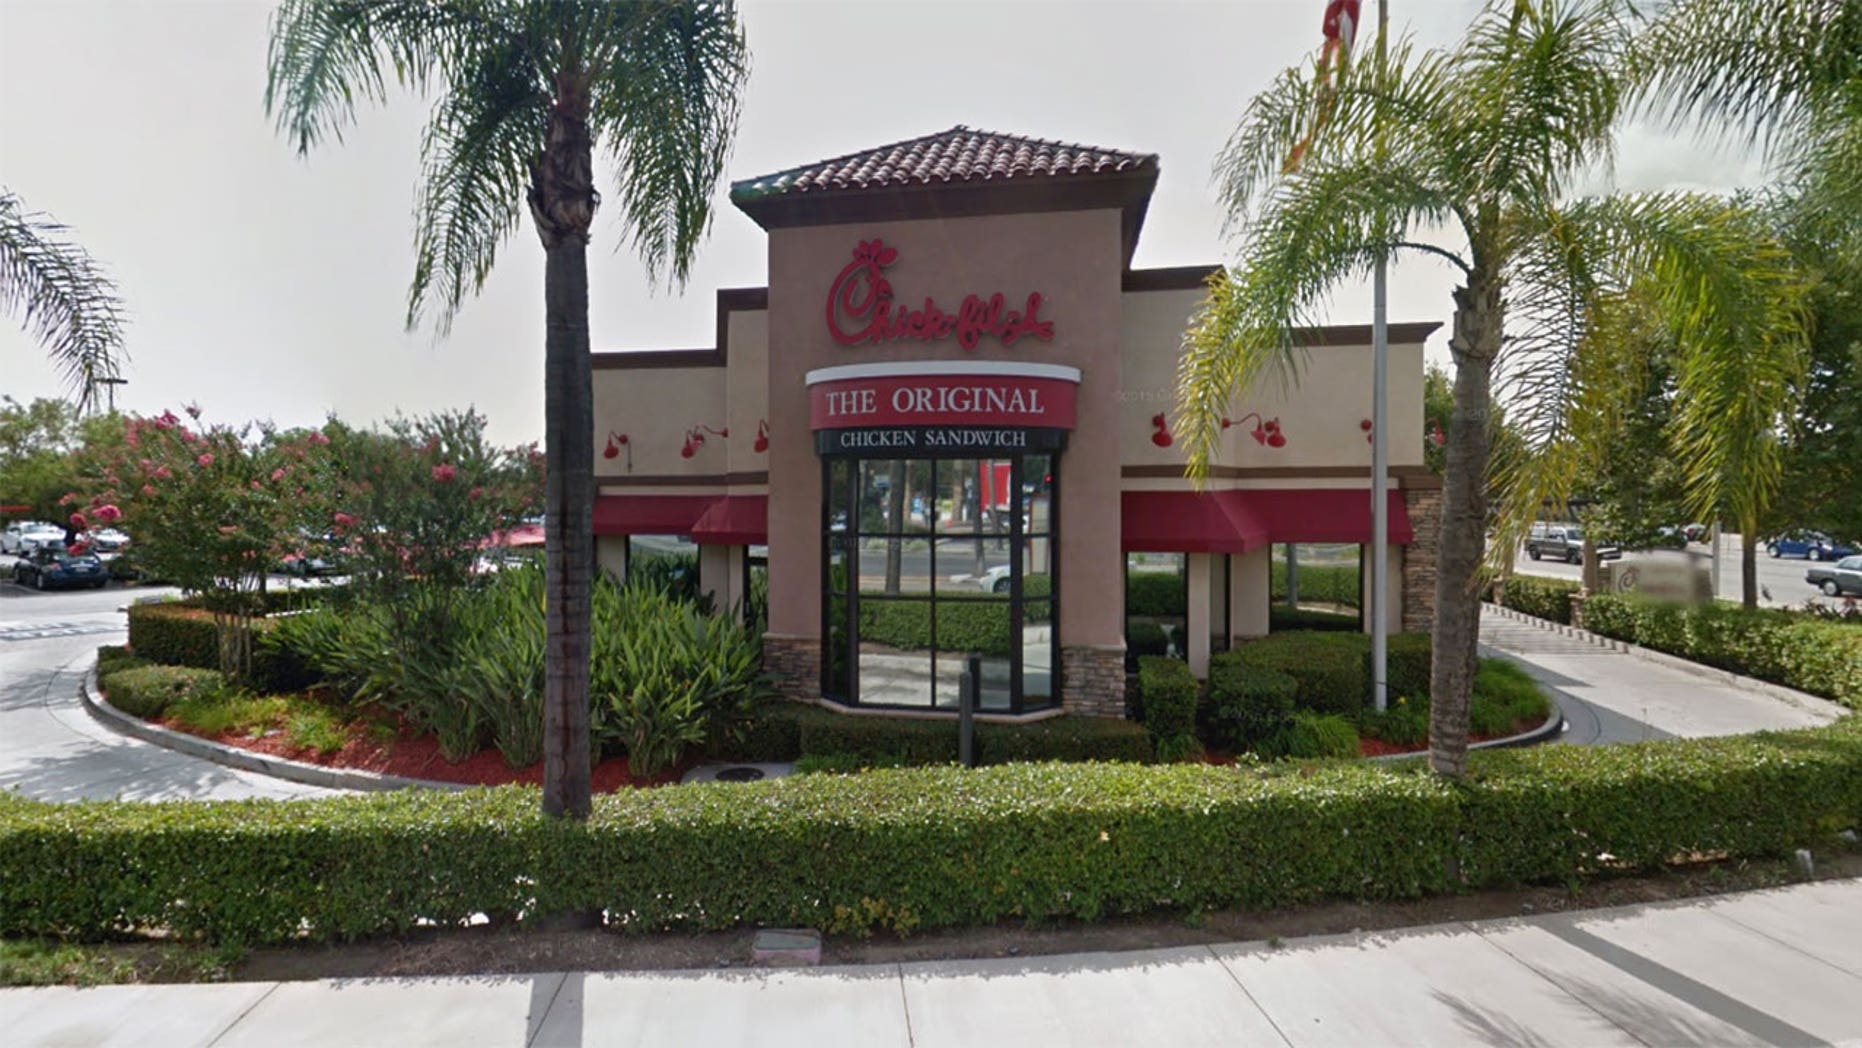 A thief called the a Chick-fil-A restaurant in Chino Hills, Calif., pretending to be the company's CFO.